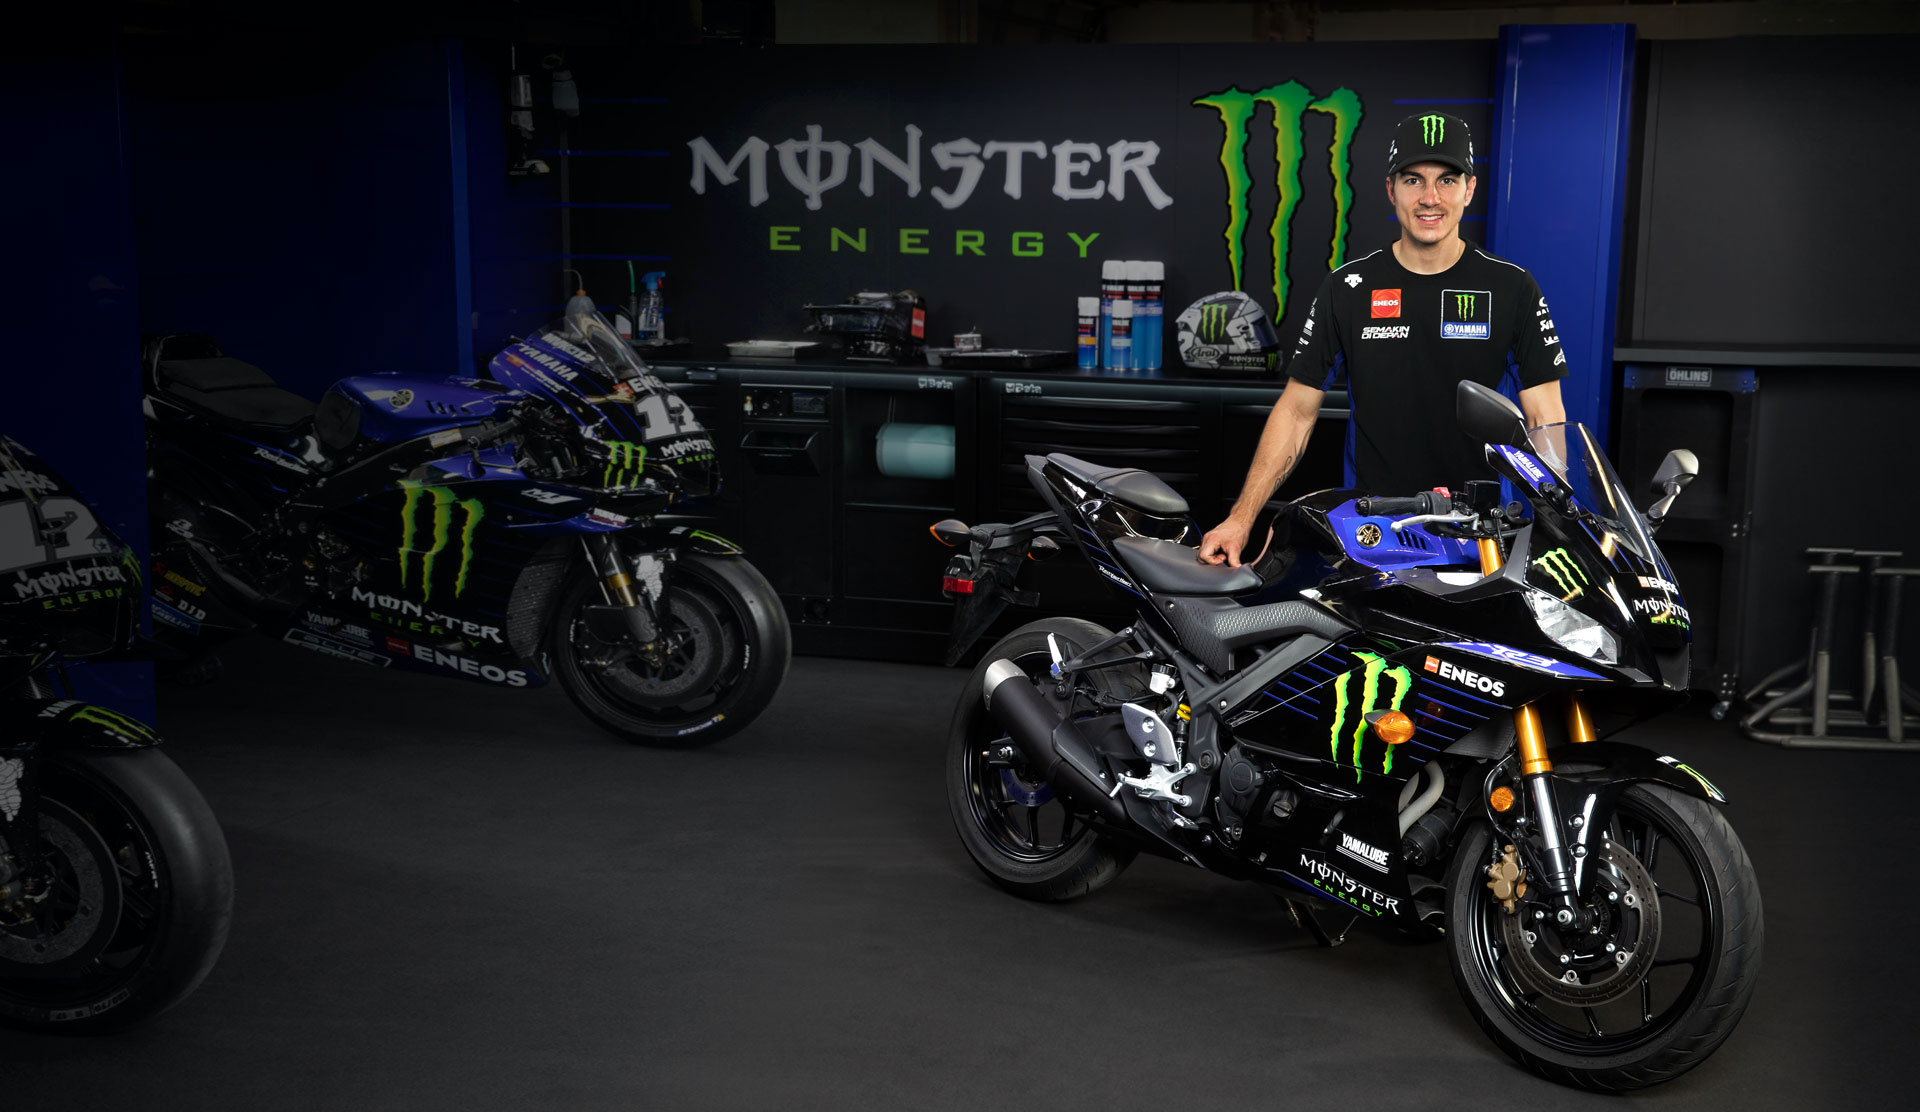 2021 Yamaha Yzf R3 Monster Energy Yamaha Motogp Edition Supersport Motorcycle Model Home